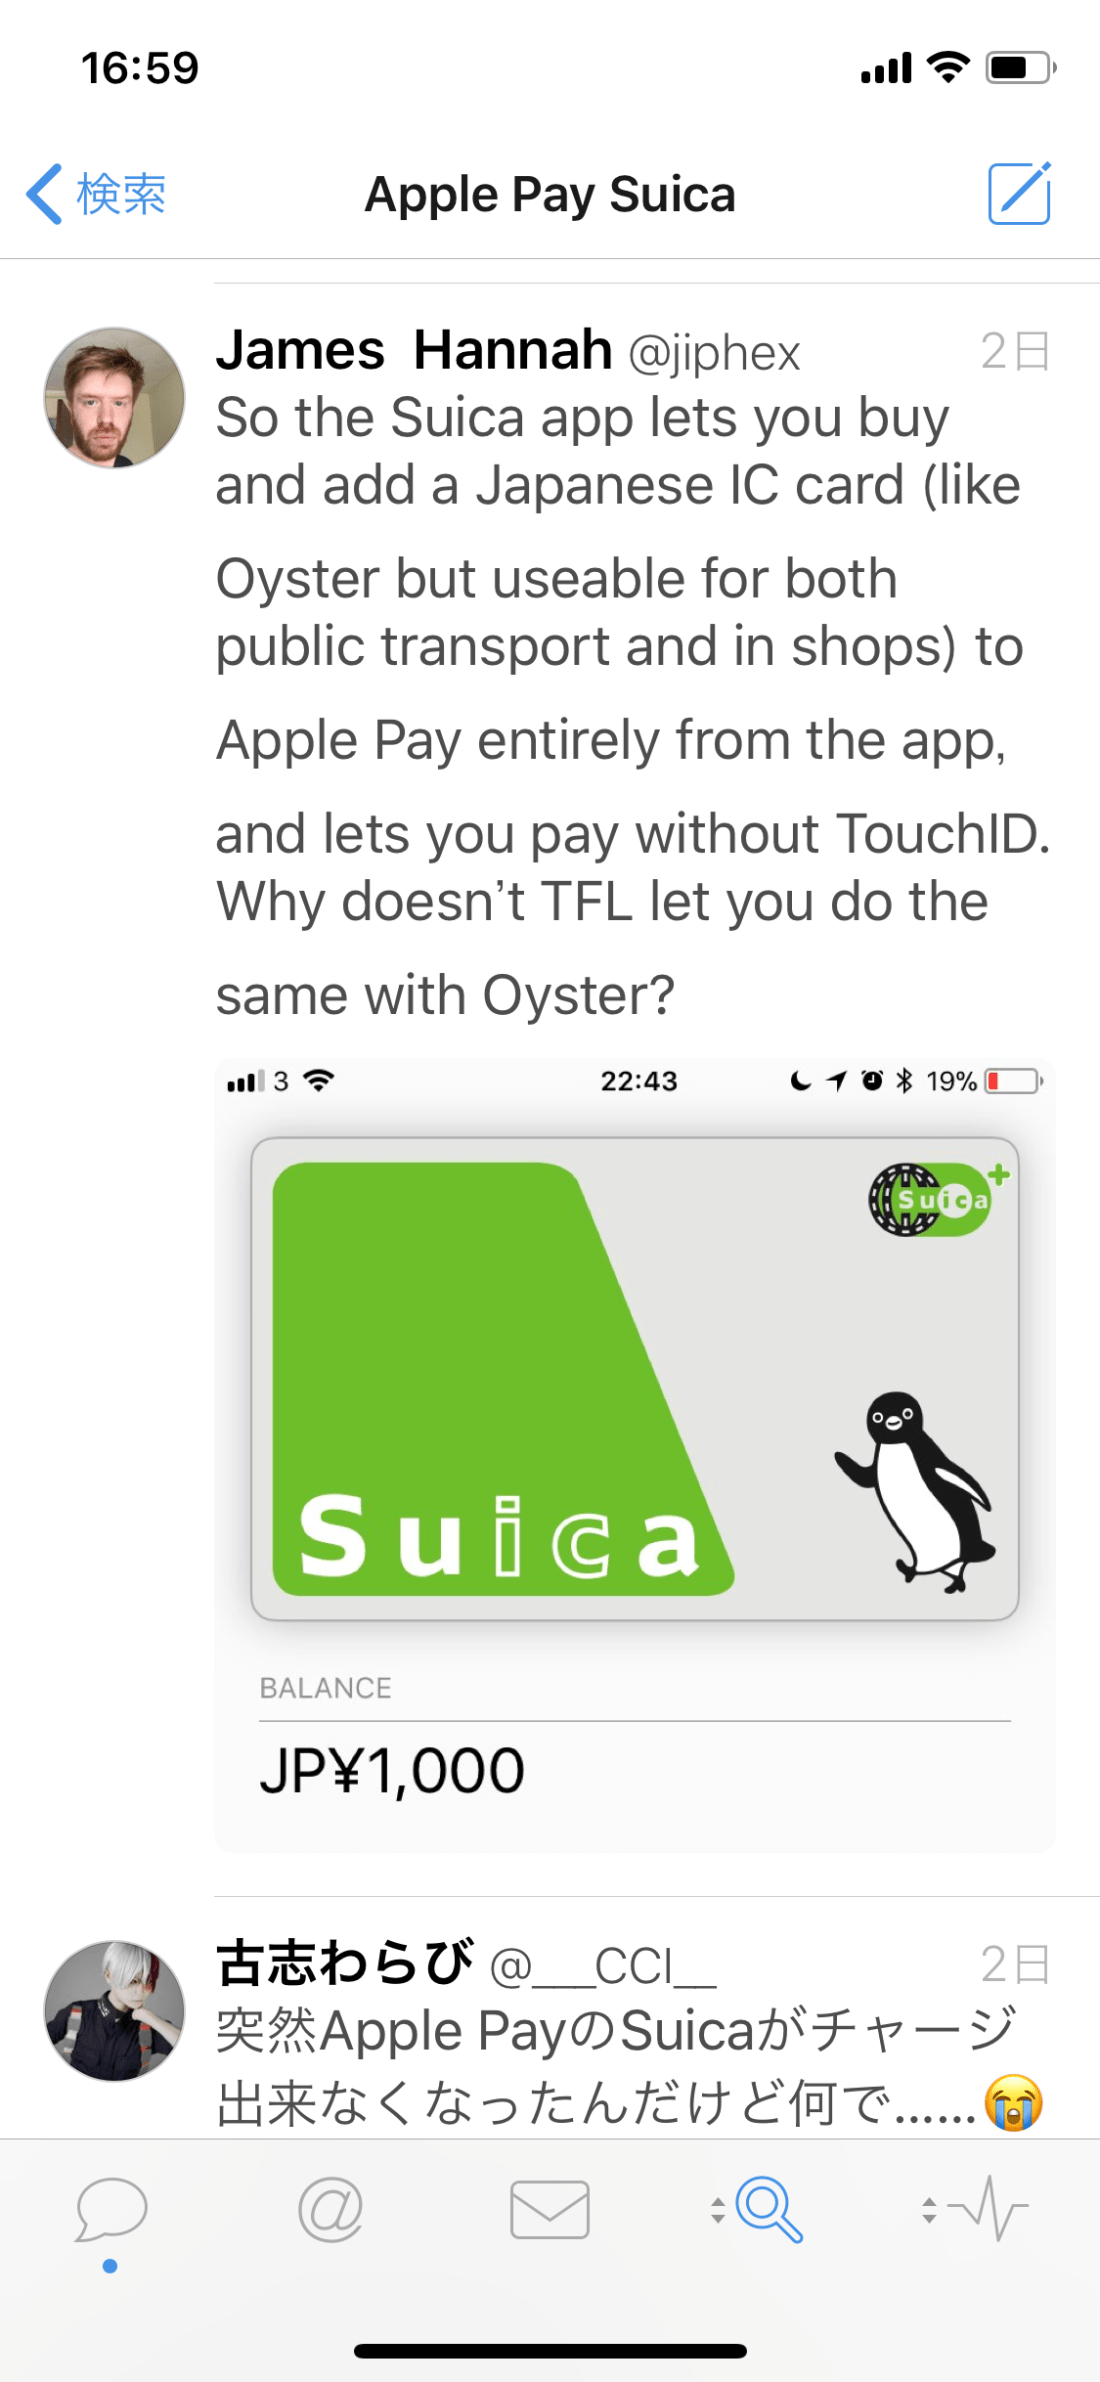 Oyster cannot be used as e-money